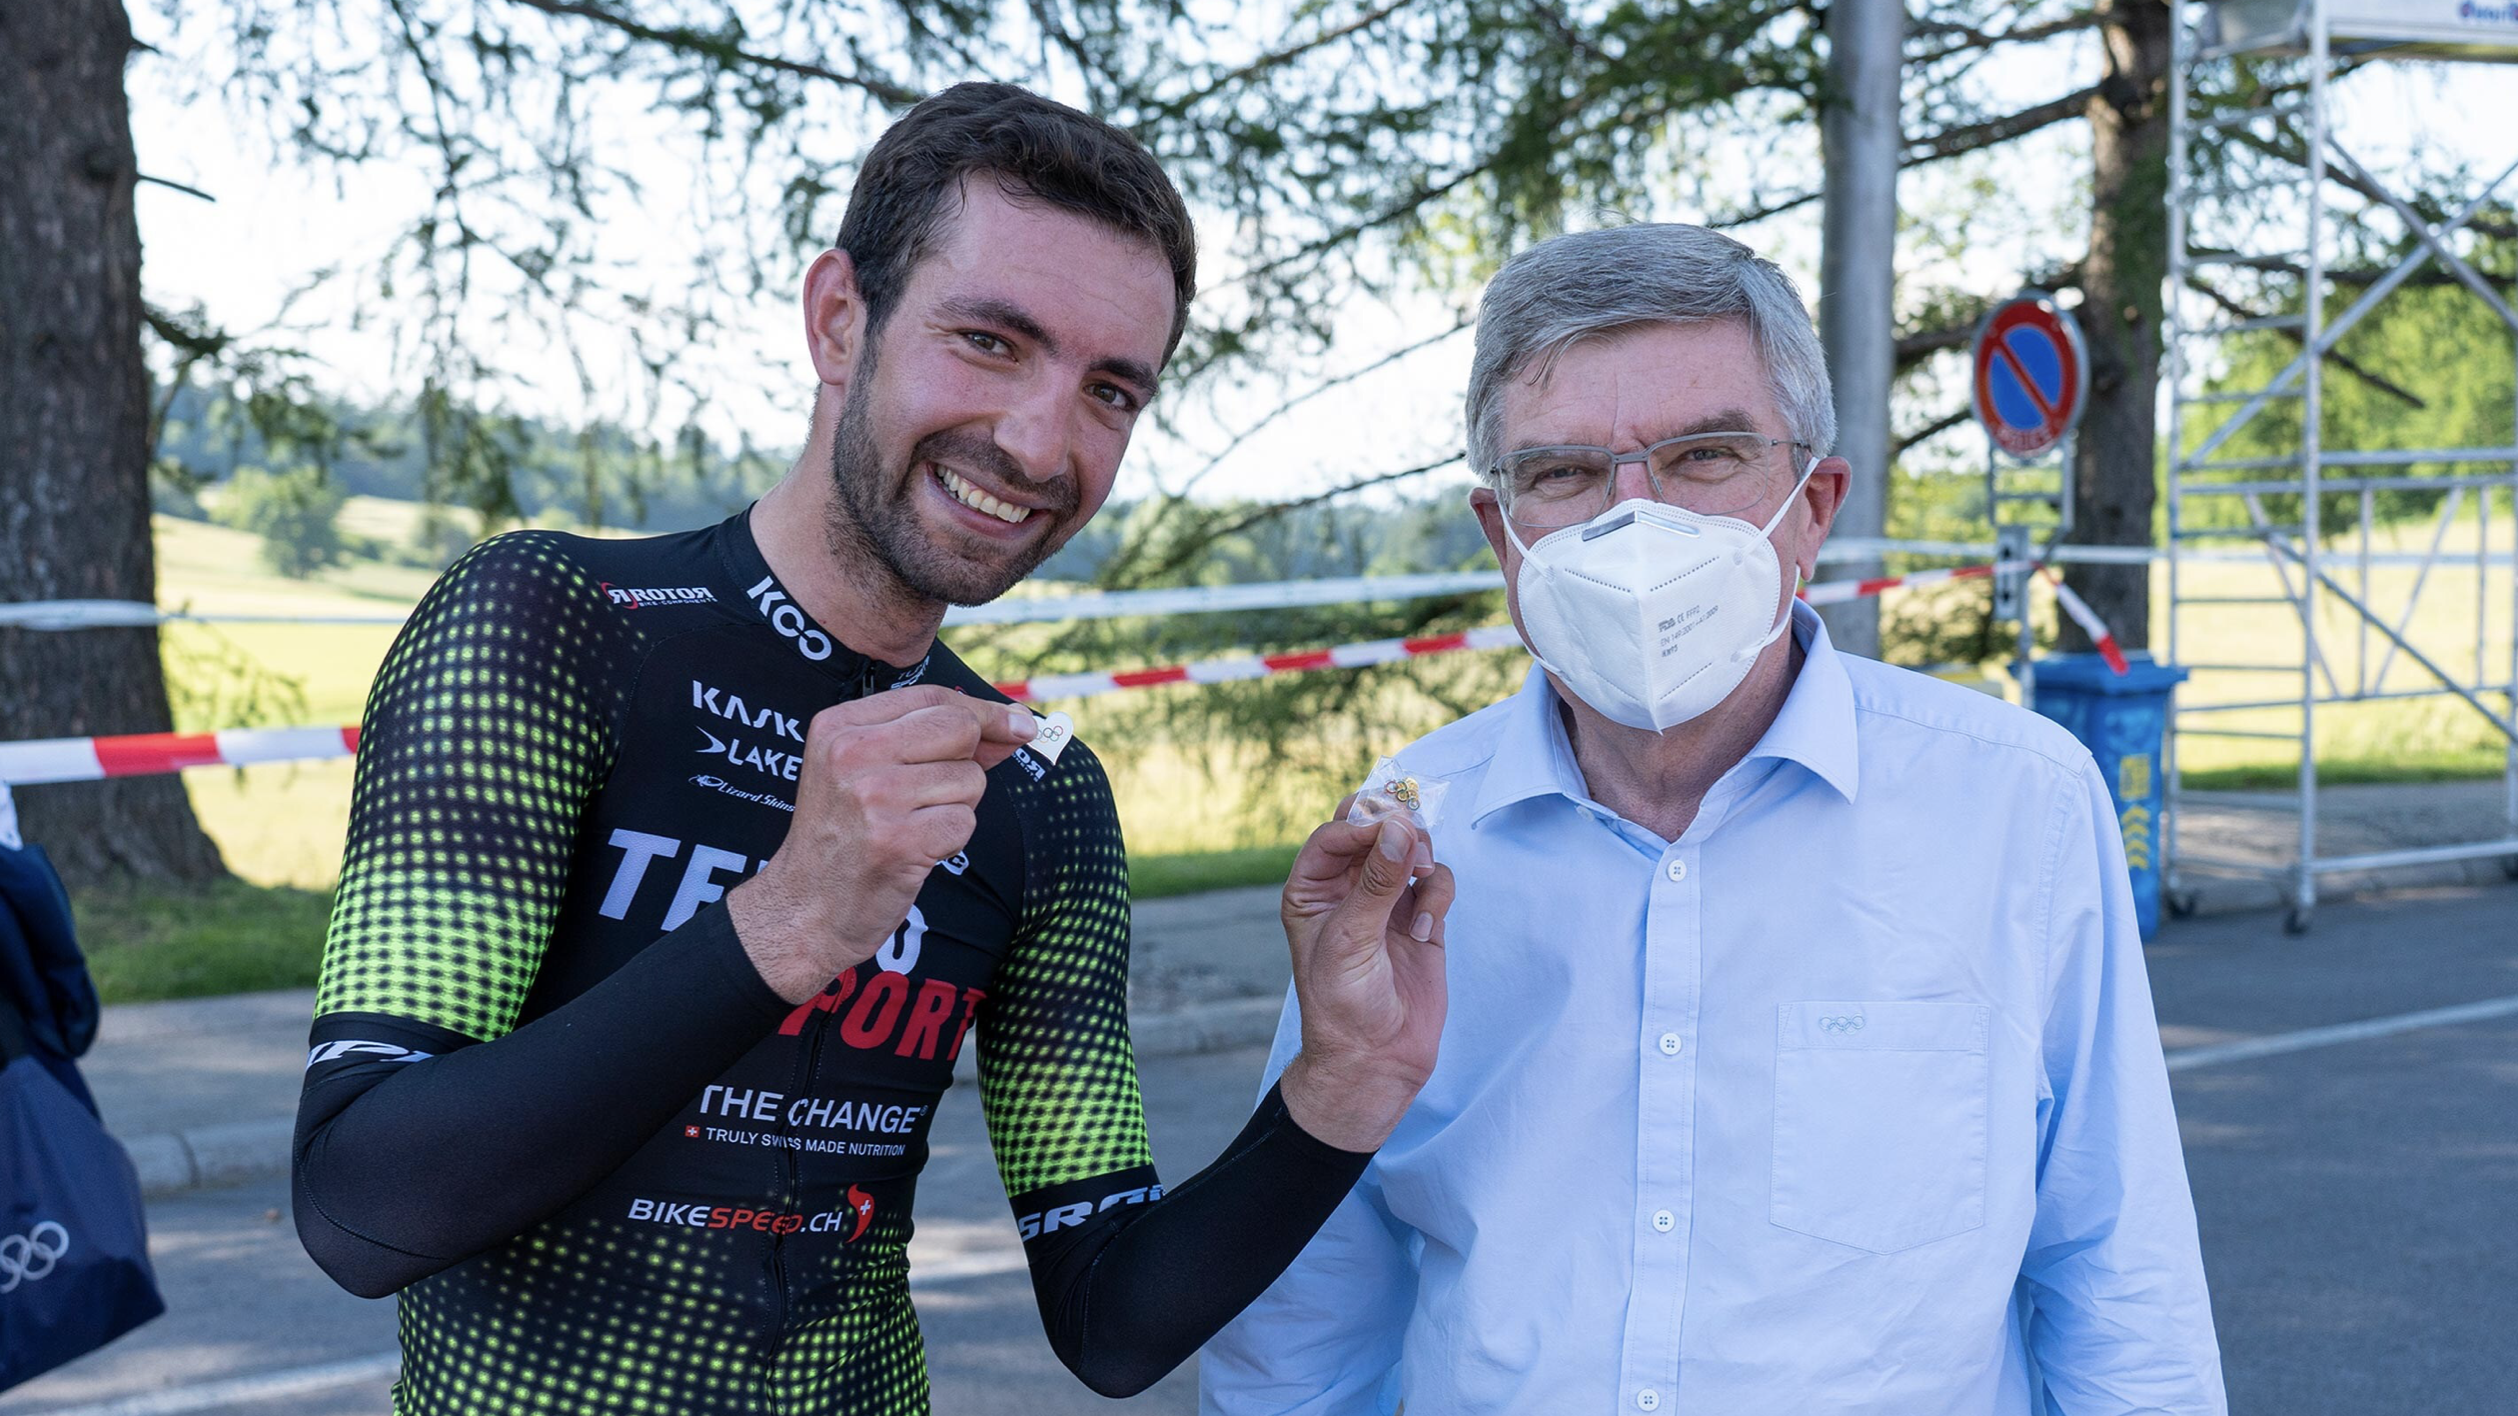 Thomas Bach, president of the International Olympic Committee (IOC), right, was at the Swiss National Cycling Time Trials to support Ahmad Badreddin Wais, one of the newly selected athletes on the IOC Refugee Olympic Team Tokyo 2020. June 16, 2021, Lausanne, Switzerland (Photo courtesy IOC) Posted for media use